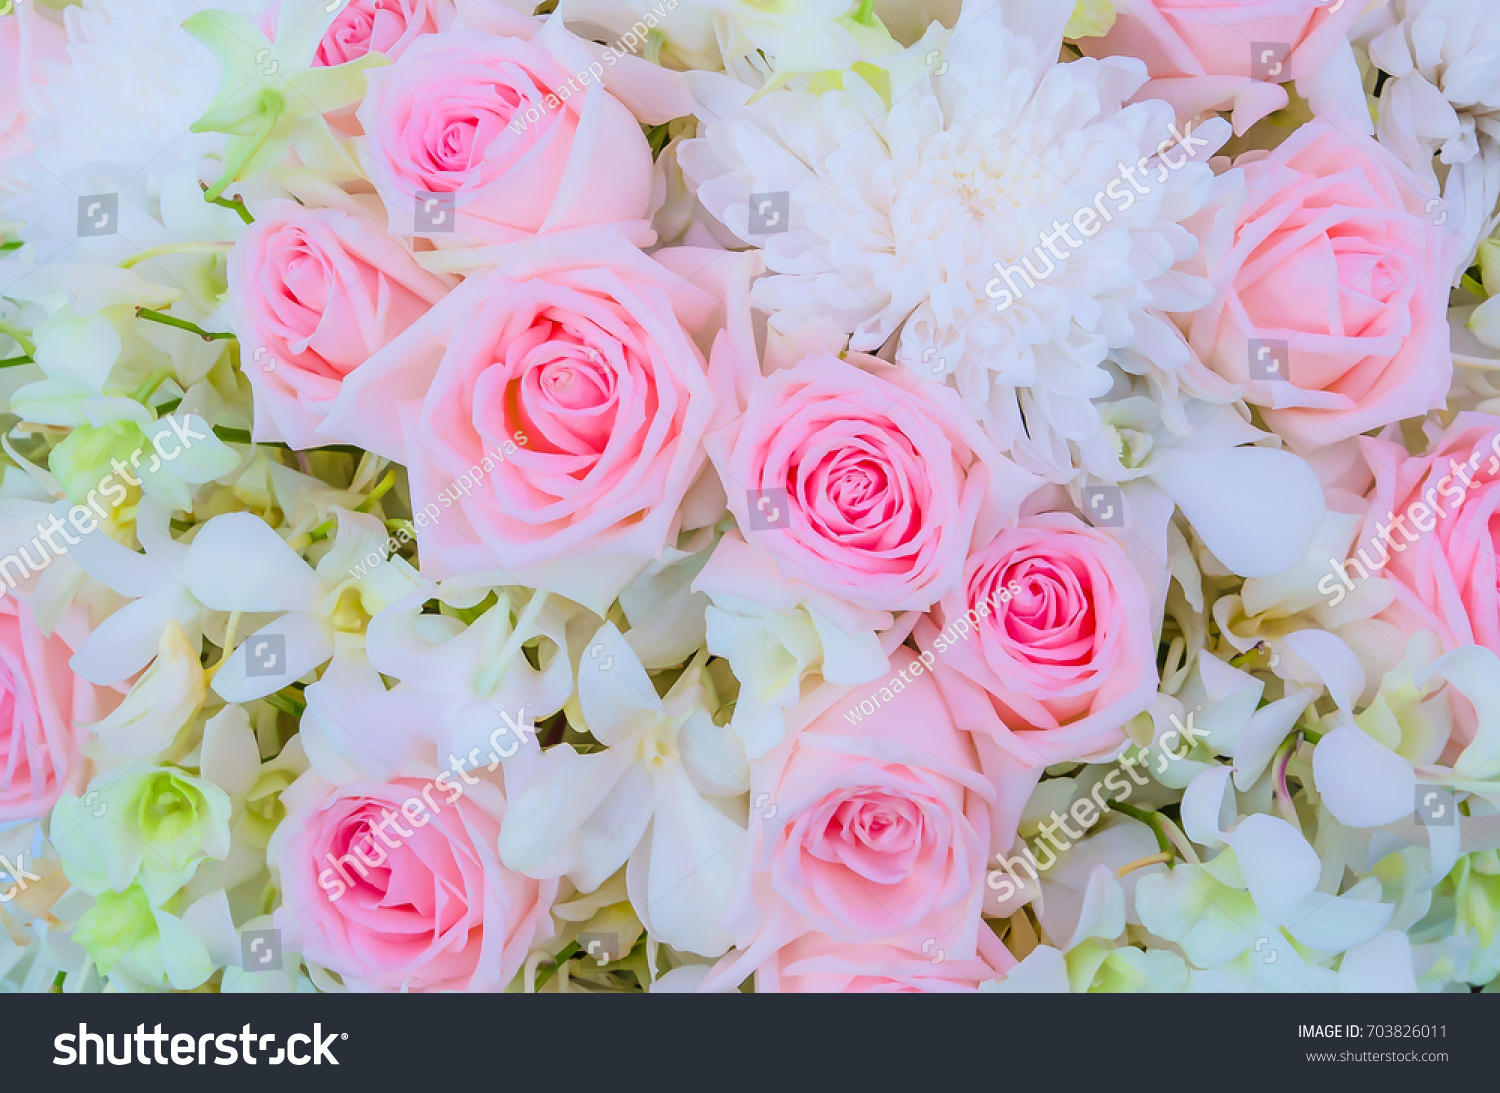 Closeup image of beautiful flowers wall background with amazing red id 703826011 izmirmasajfo